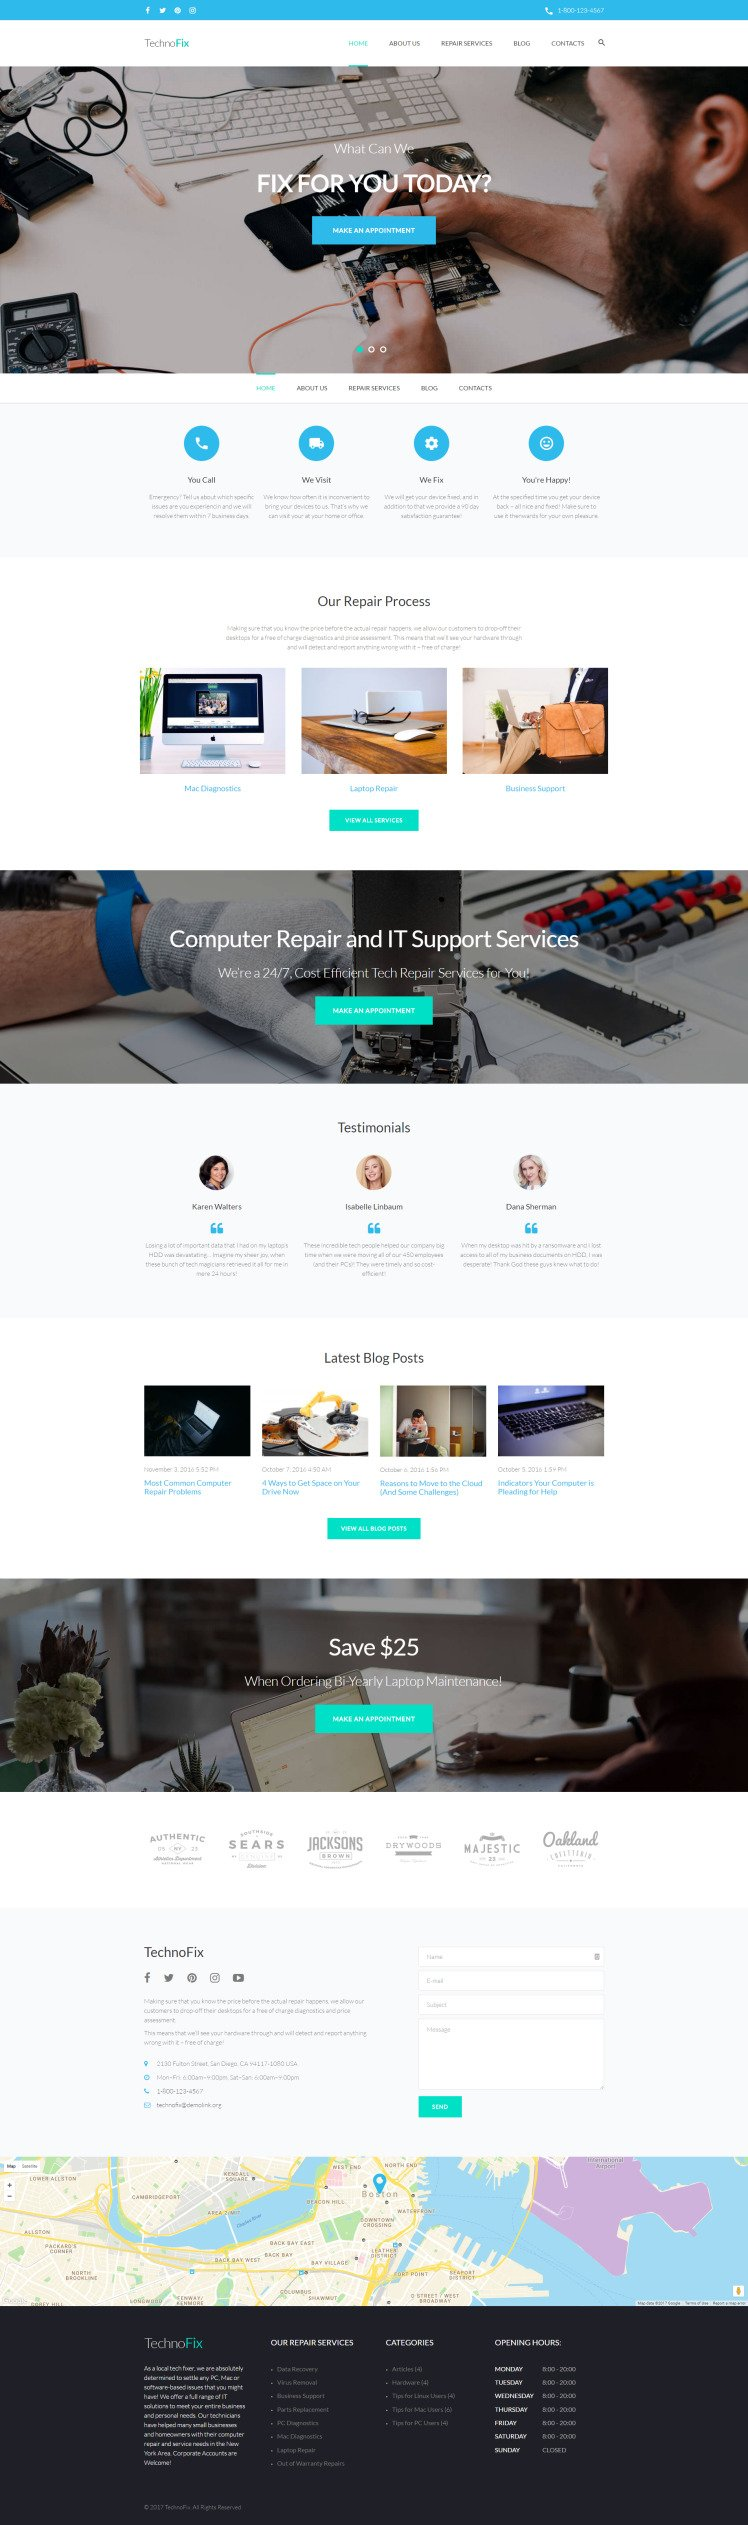 TechnoFix Tech Repair Company Responsive WordPress Themes